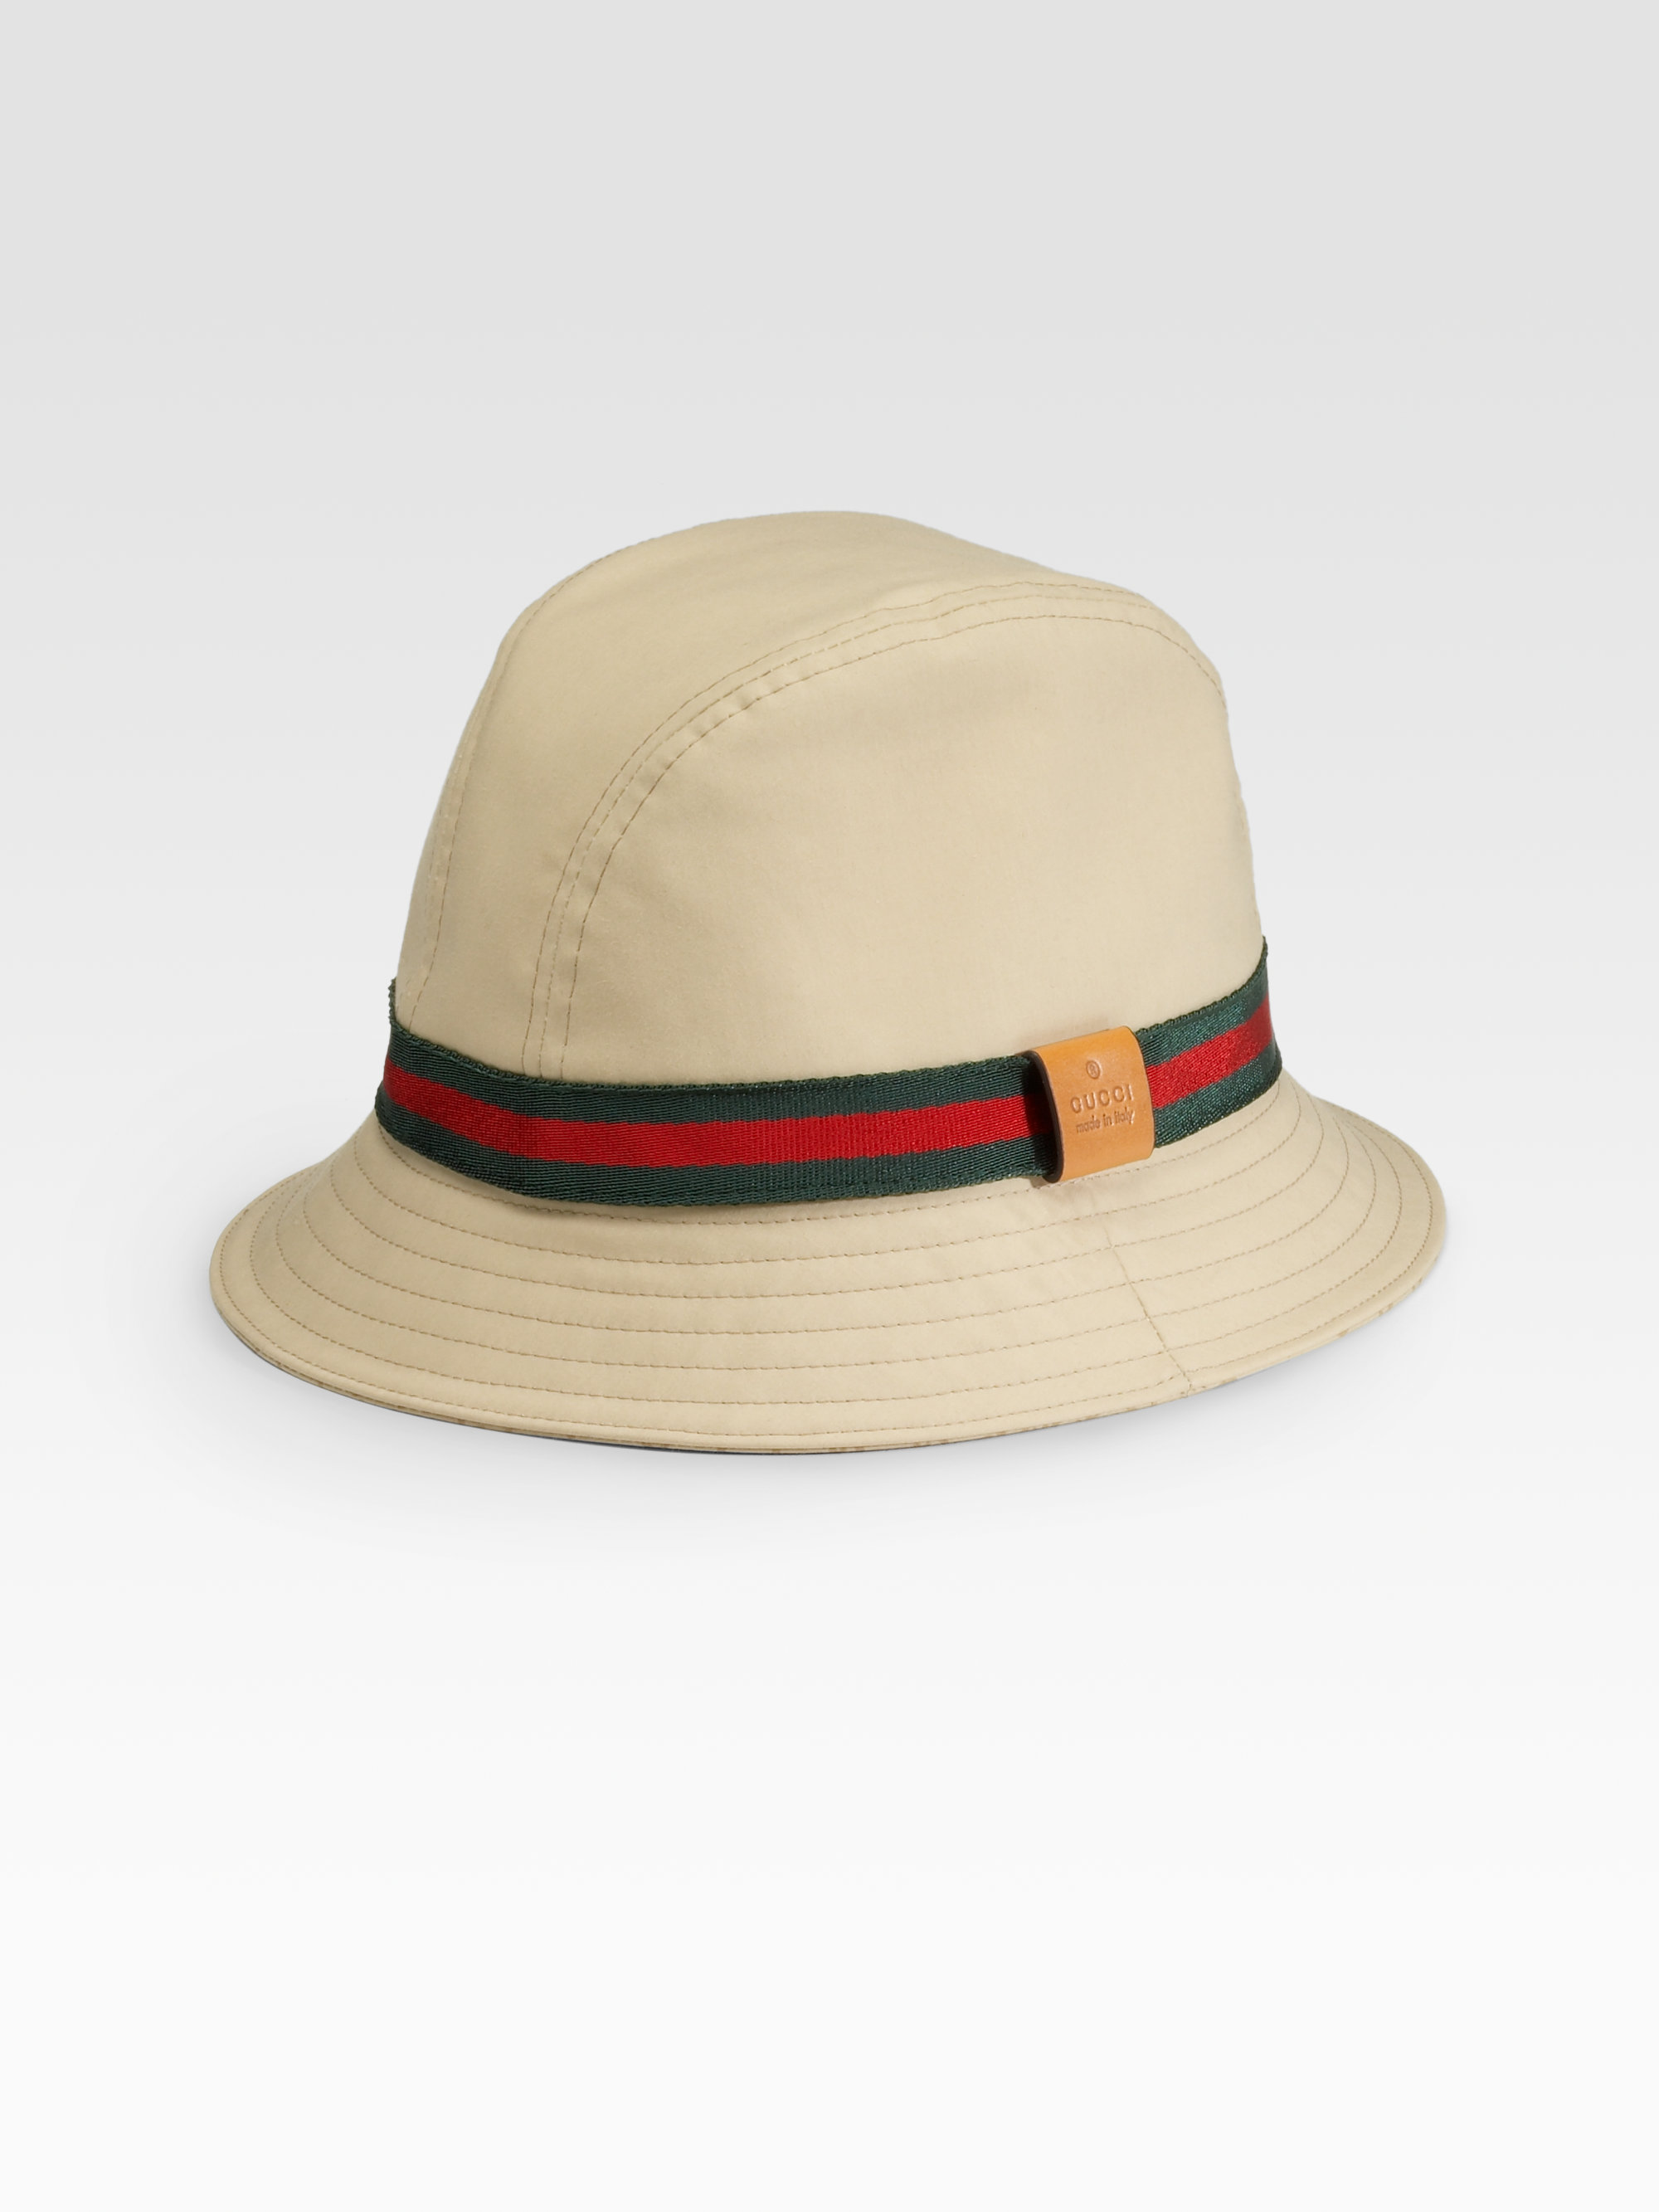 Lyst - Gucci Bucket Hat in Natural for Men bc19b742008